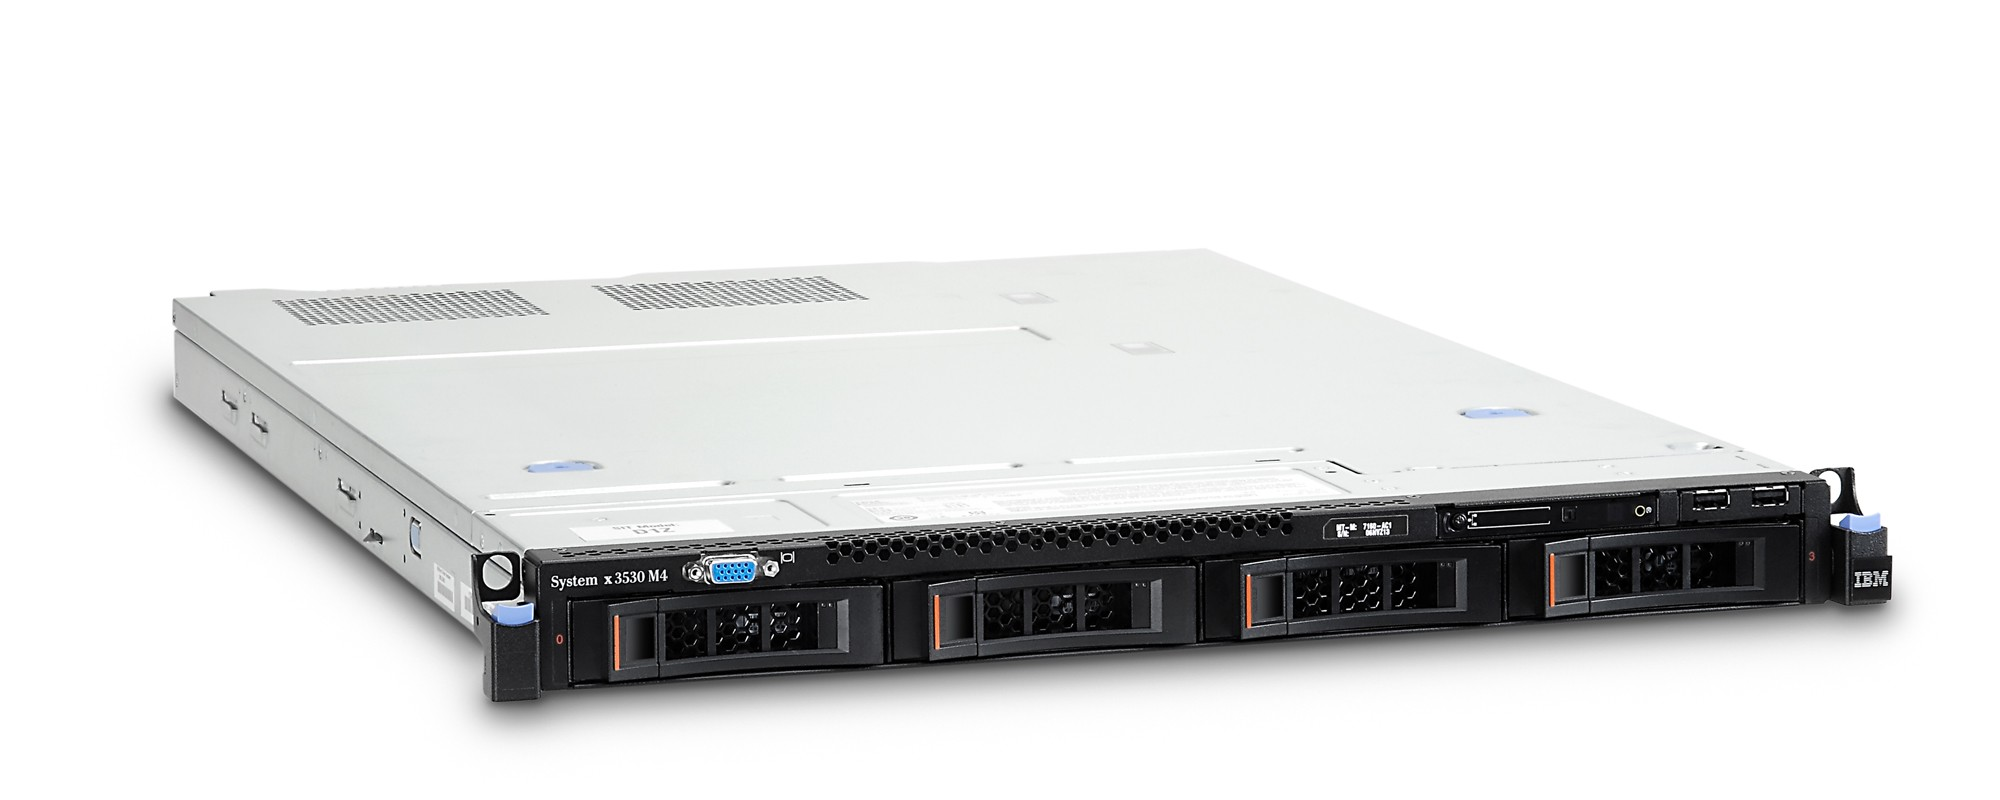 SERVER IBM® SYSTEM® X3530 M4 - E5-2407 Intel® Xeon® 4-Core Processor E5-2407, 2.2GHz, 10MB, 6.40GT/s QPI